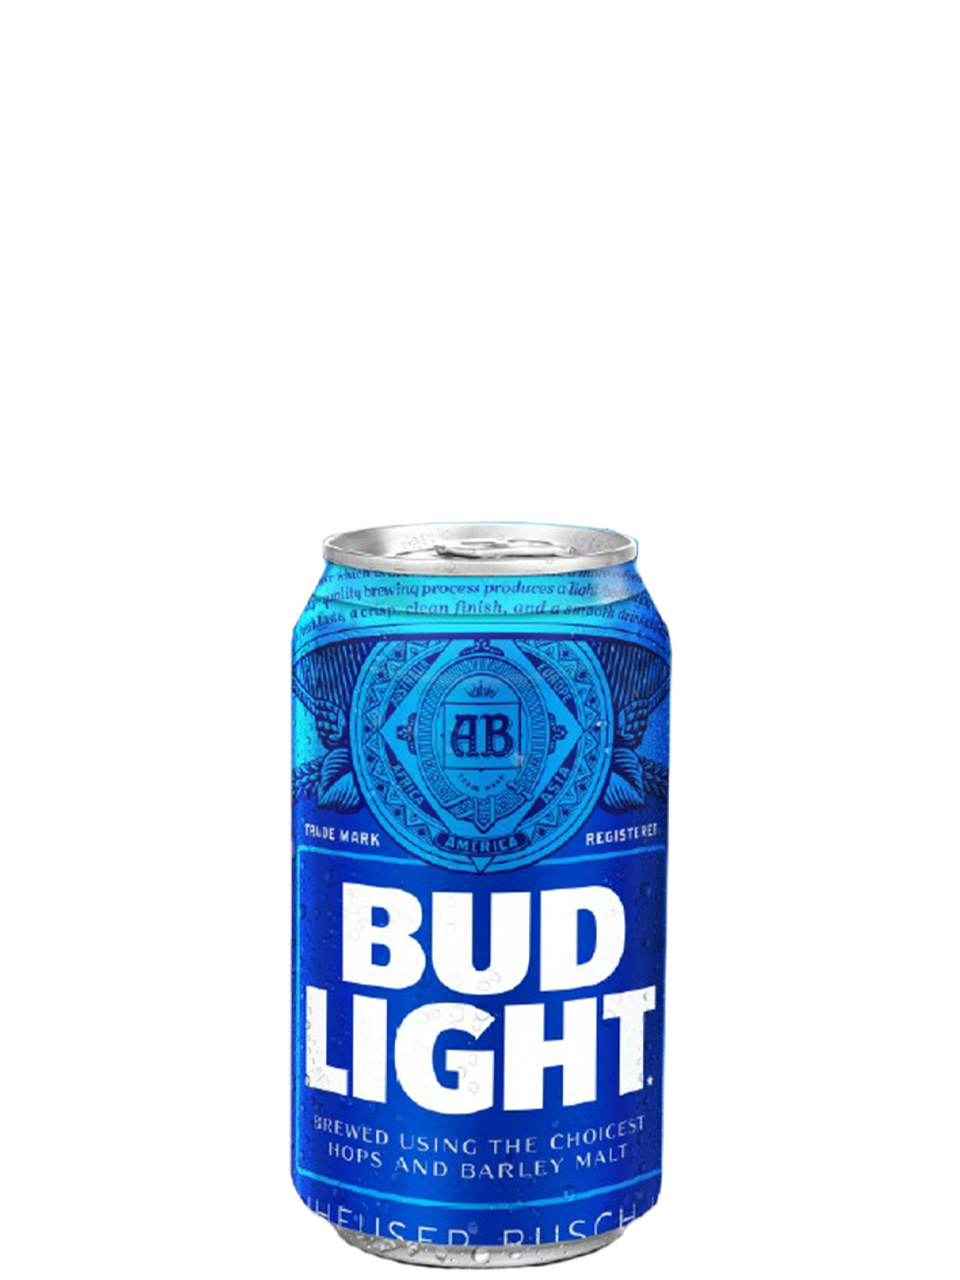 Bud Light 12 Pack Cans